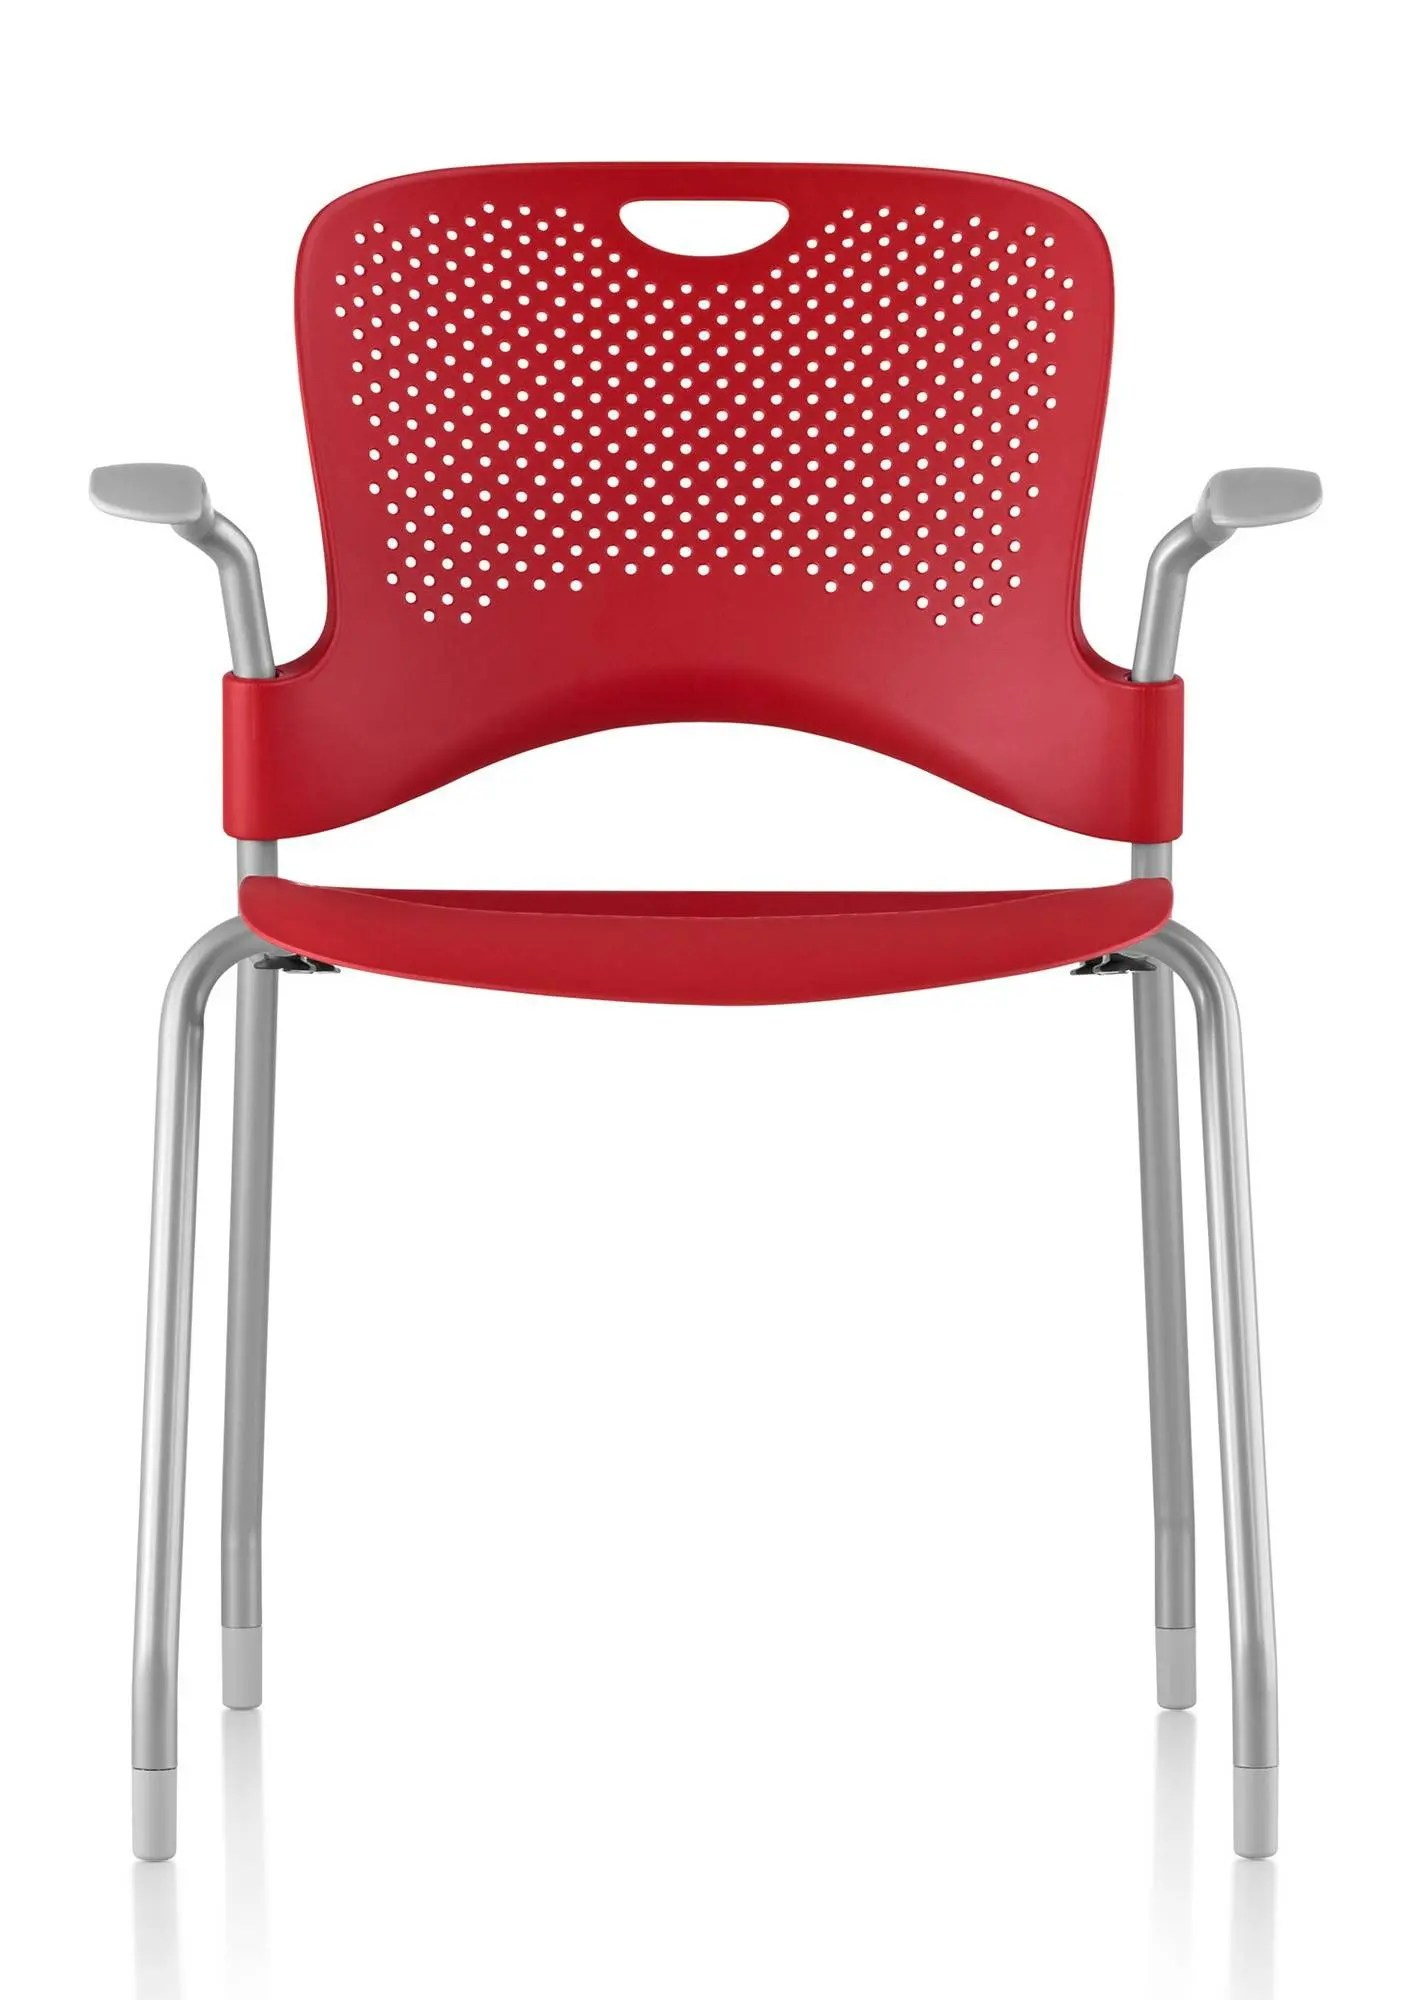 Caper Chair Herman Miller Caper Stacking Chair Gr Shop Canada